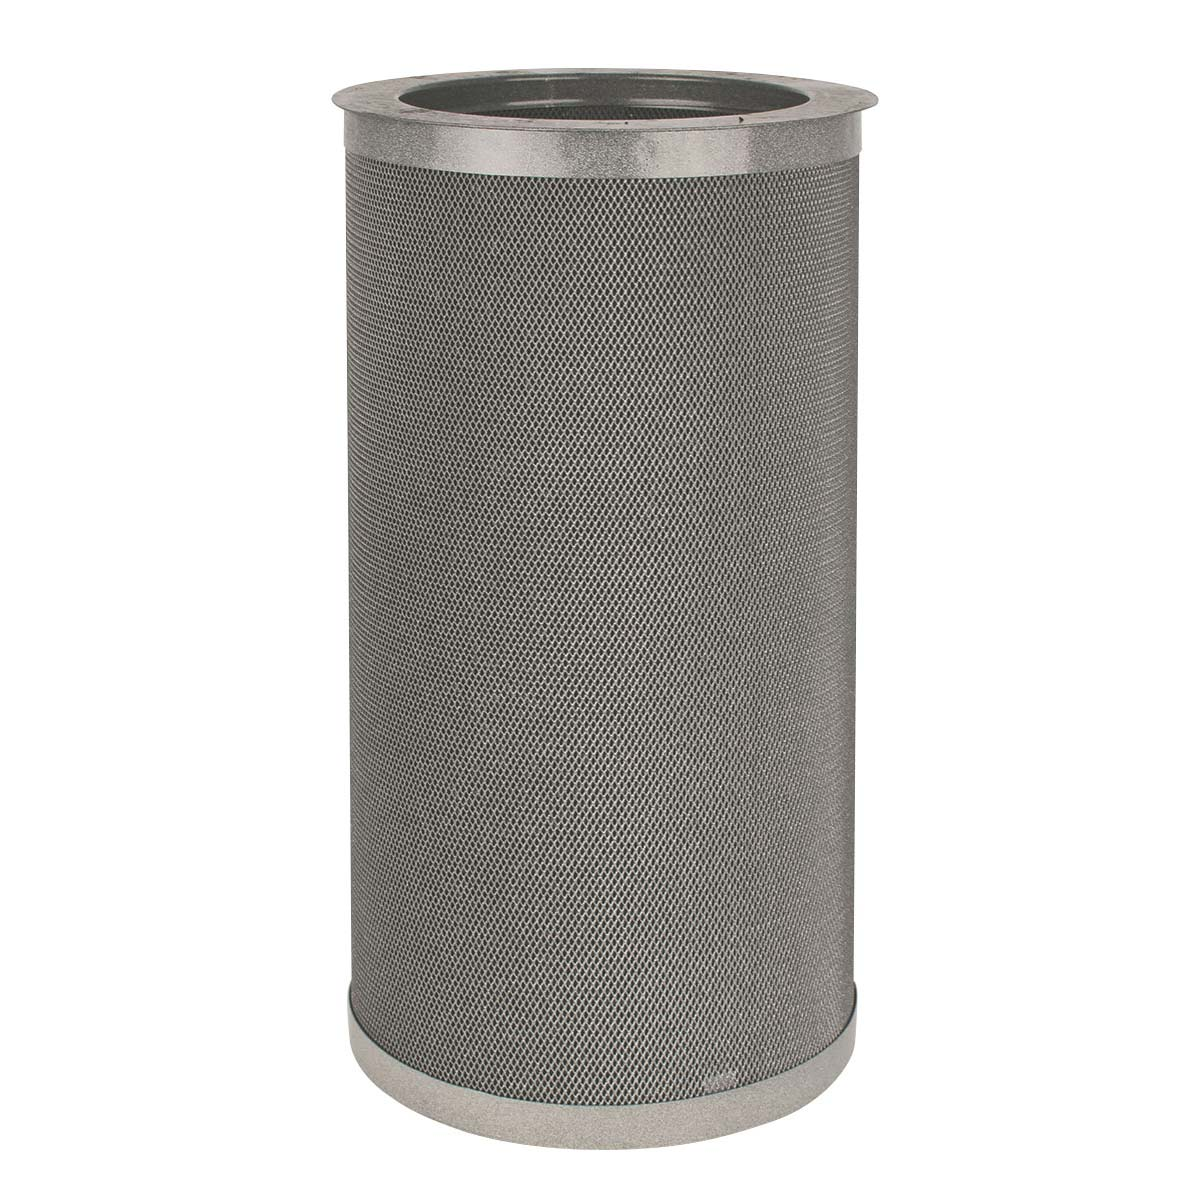 3rd Stage Carbon Canister Filter - Reduce Odor and VOC - NorAir 800